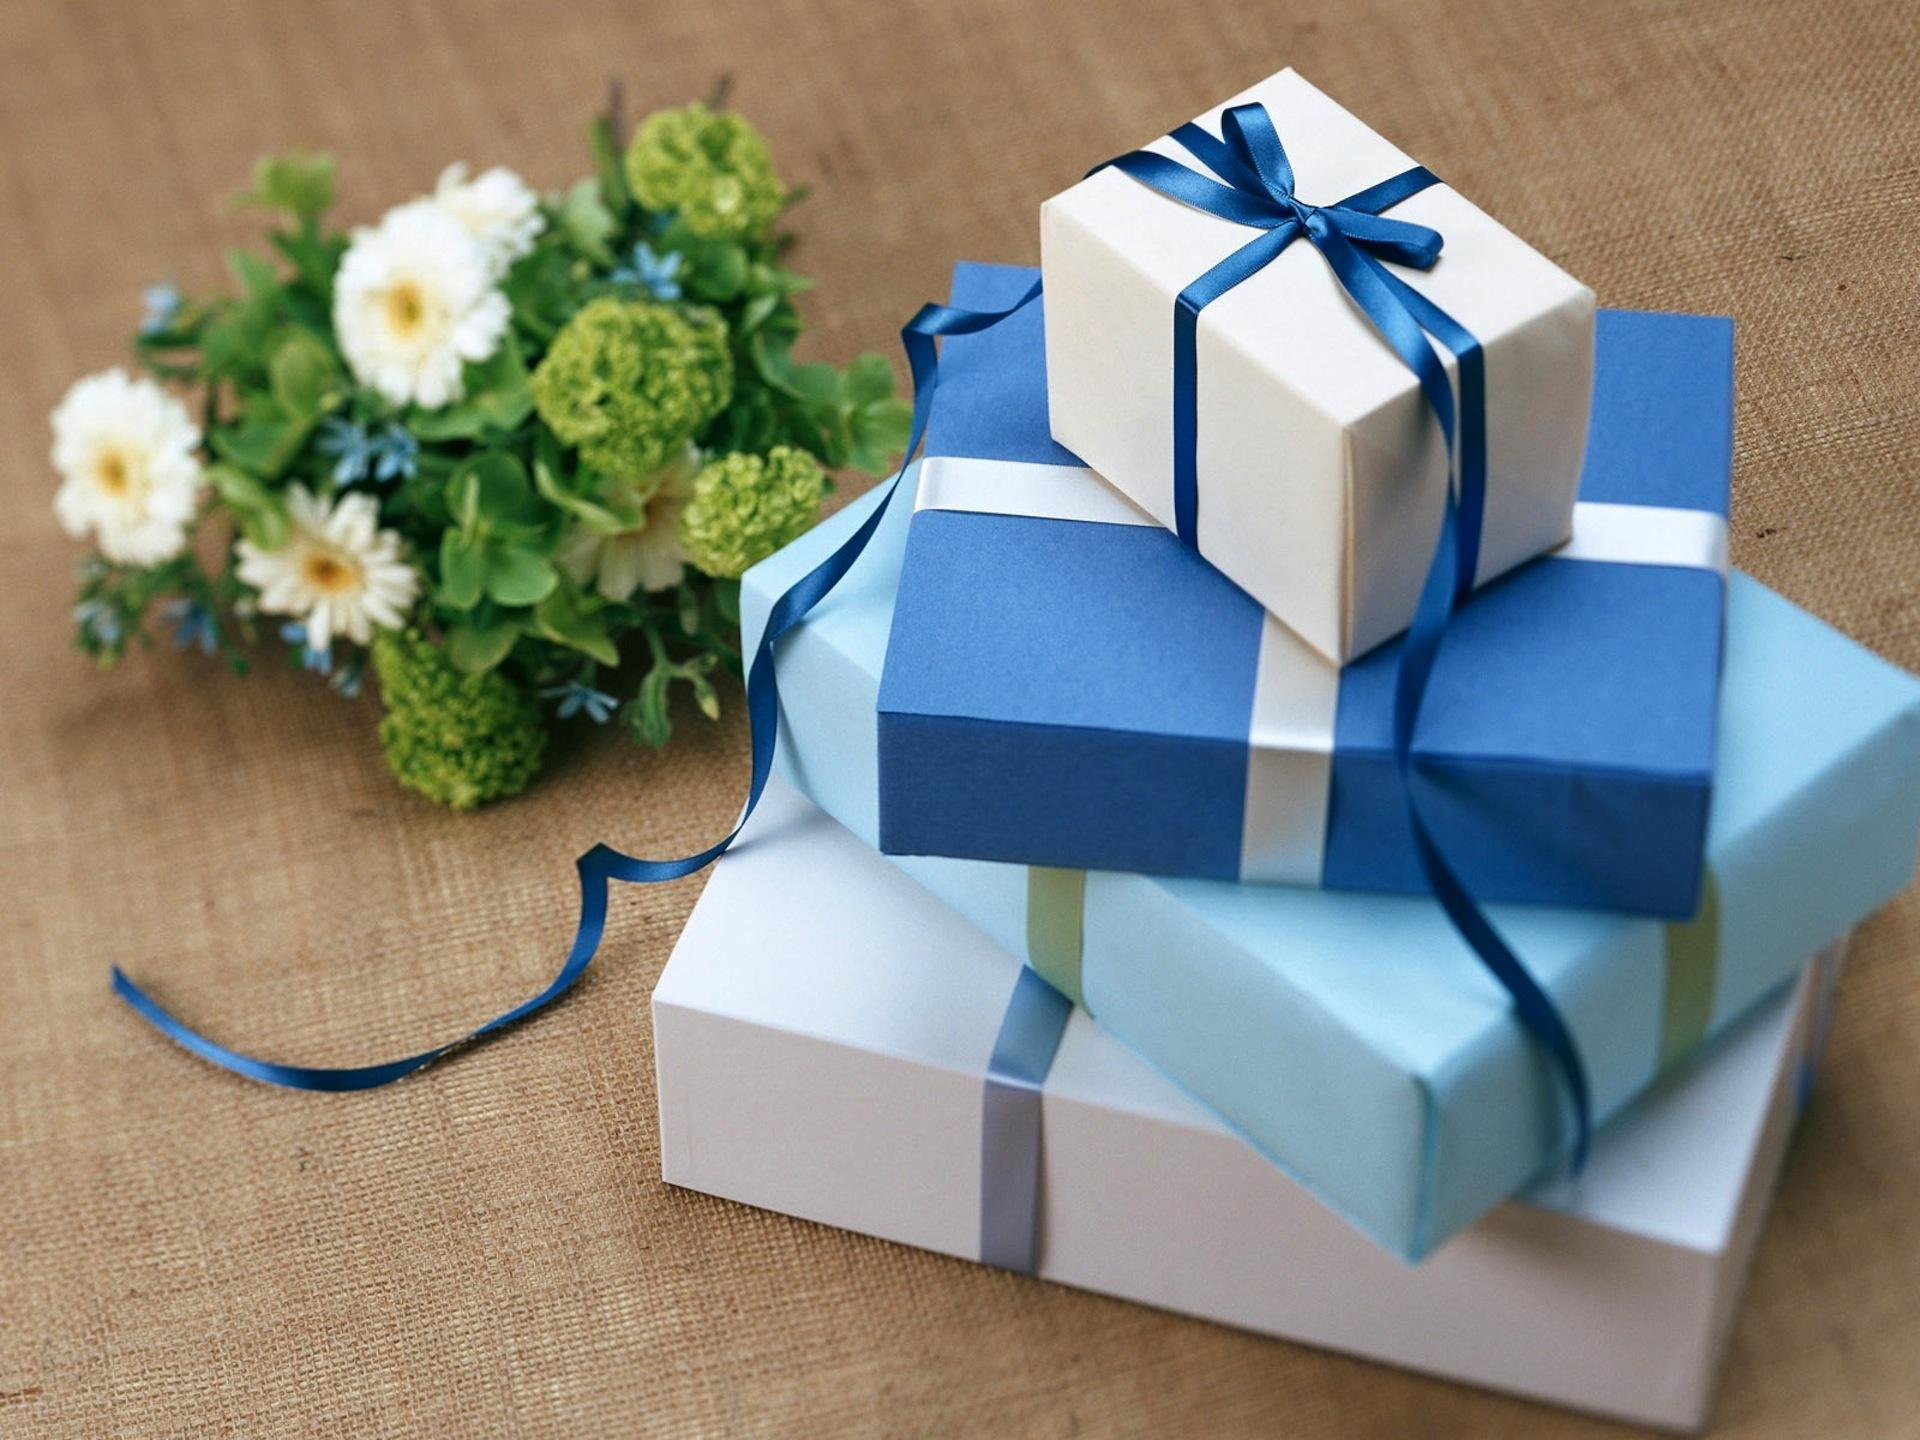 Gift box pictures 40011 1920x1440 px hdwallsource gift box pictures 40011 negle Gallery